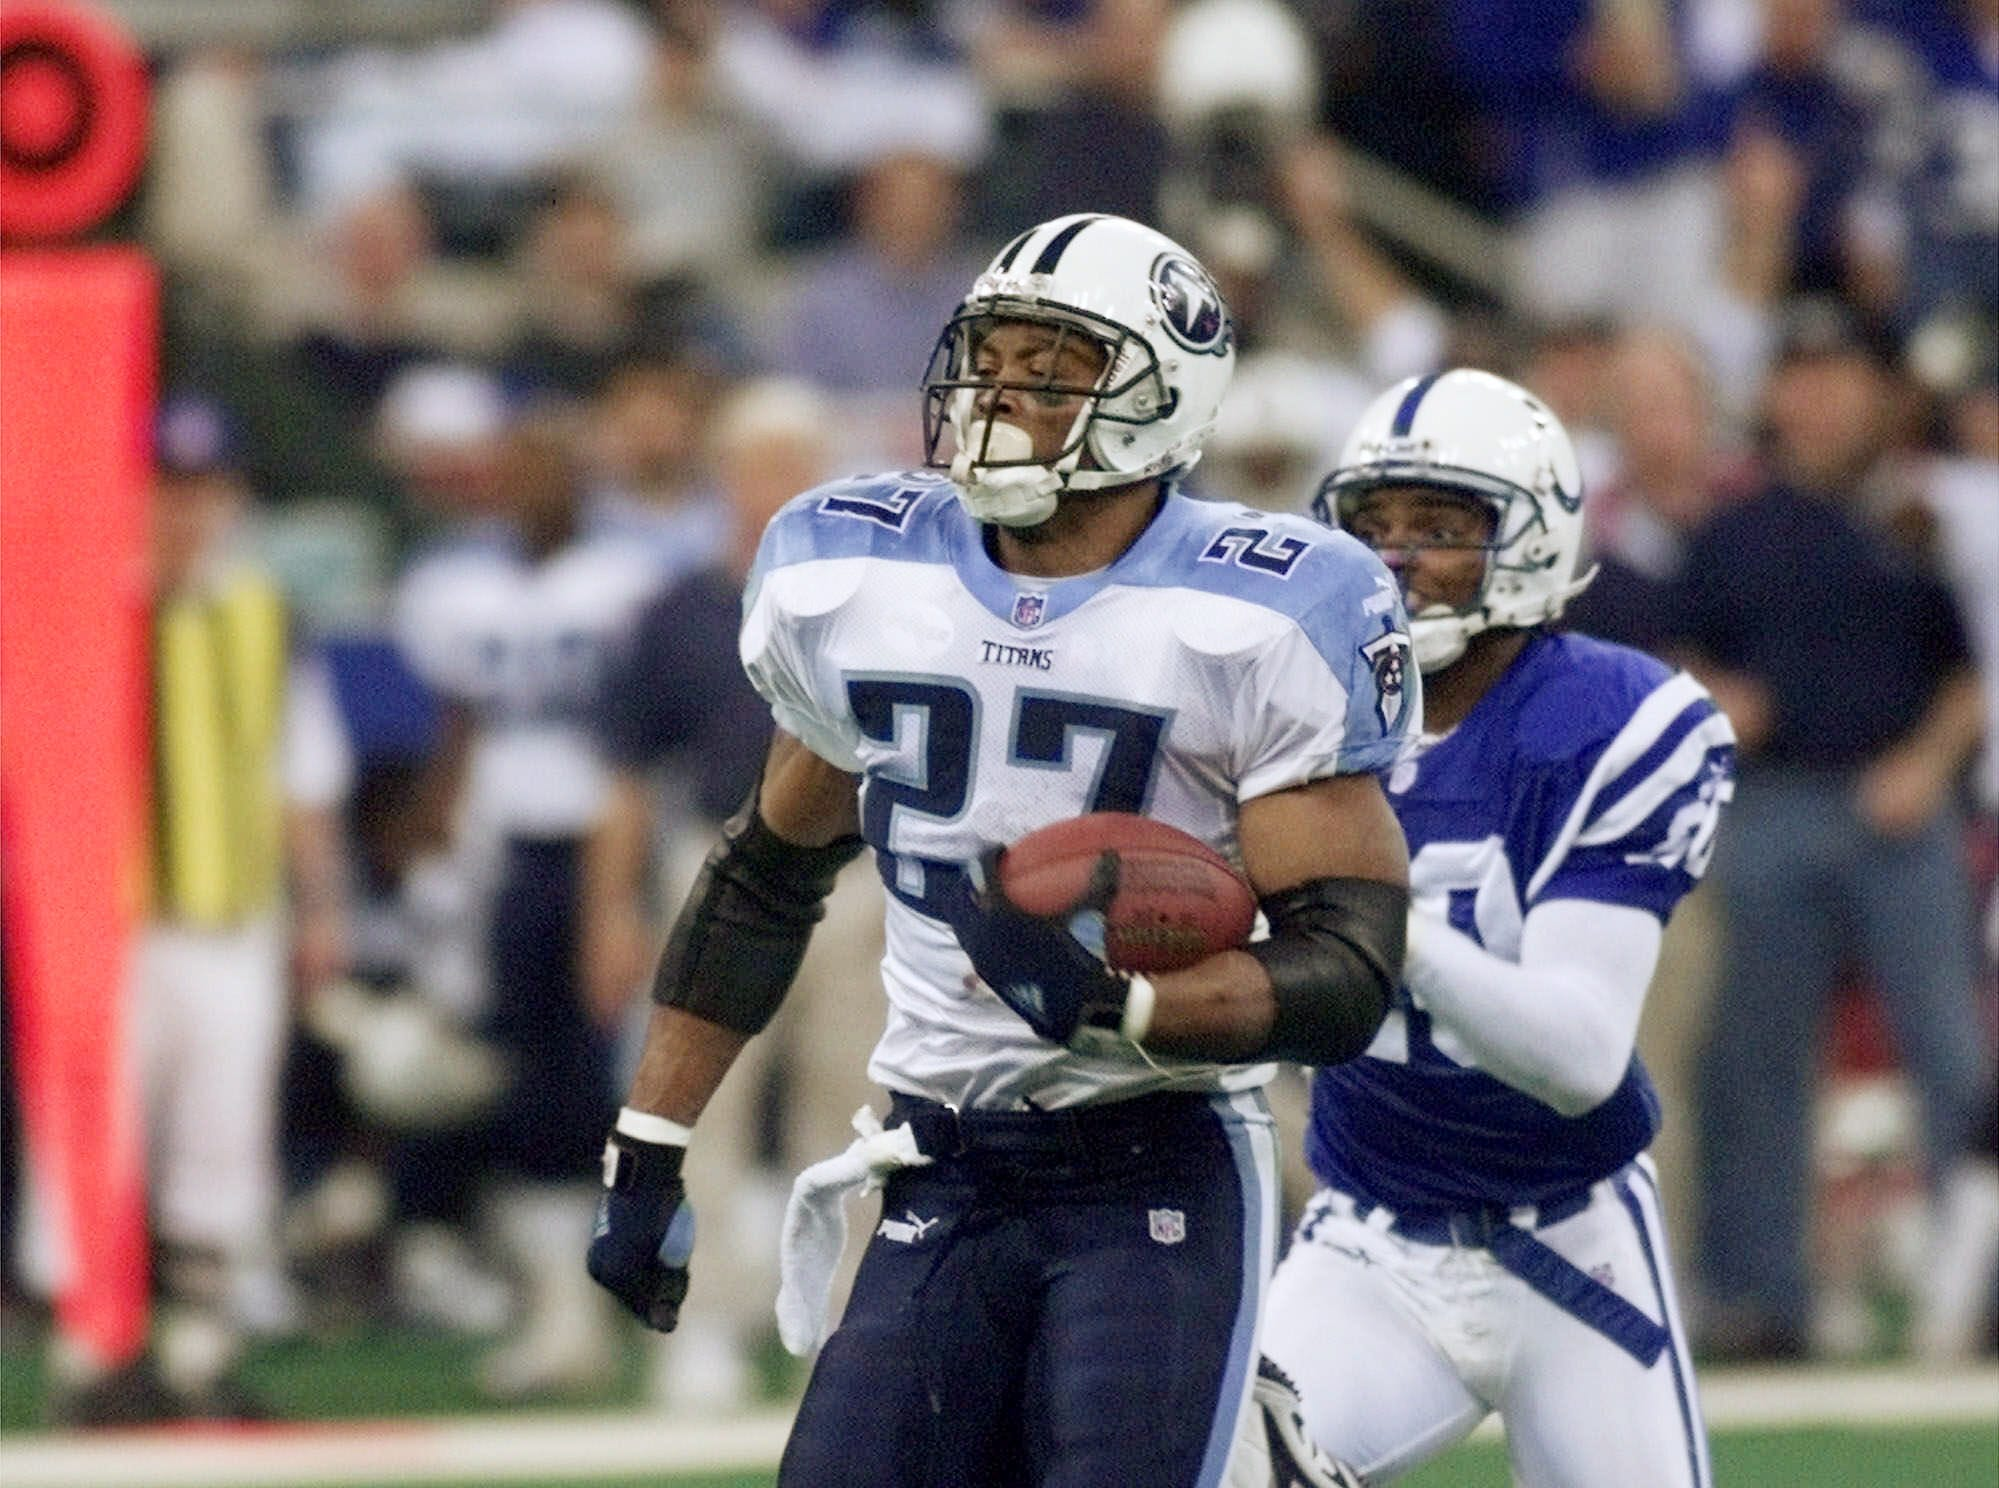 Tennessee Titans running back Eddie George, left, outruns Indianapolis Colts defensive back Jeff Burris to score a 68-yard touchdown during their 19-16 victory over the Colts in the AFC divisional playoff game at Indianapolis Jan. 16, 2000.